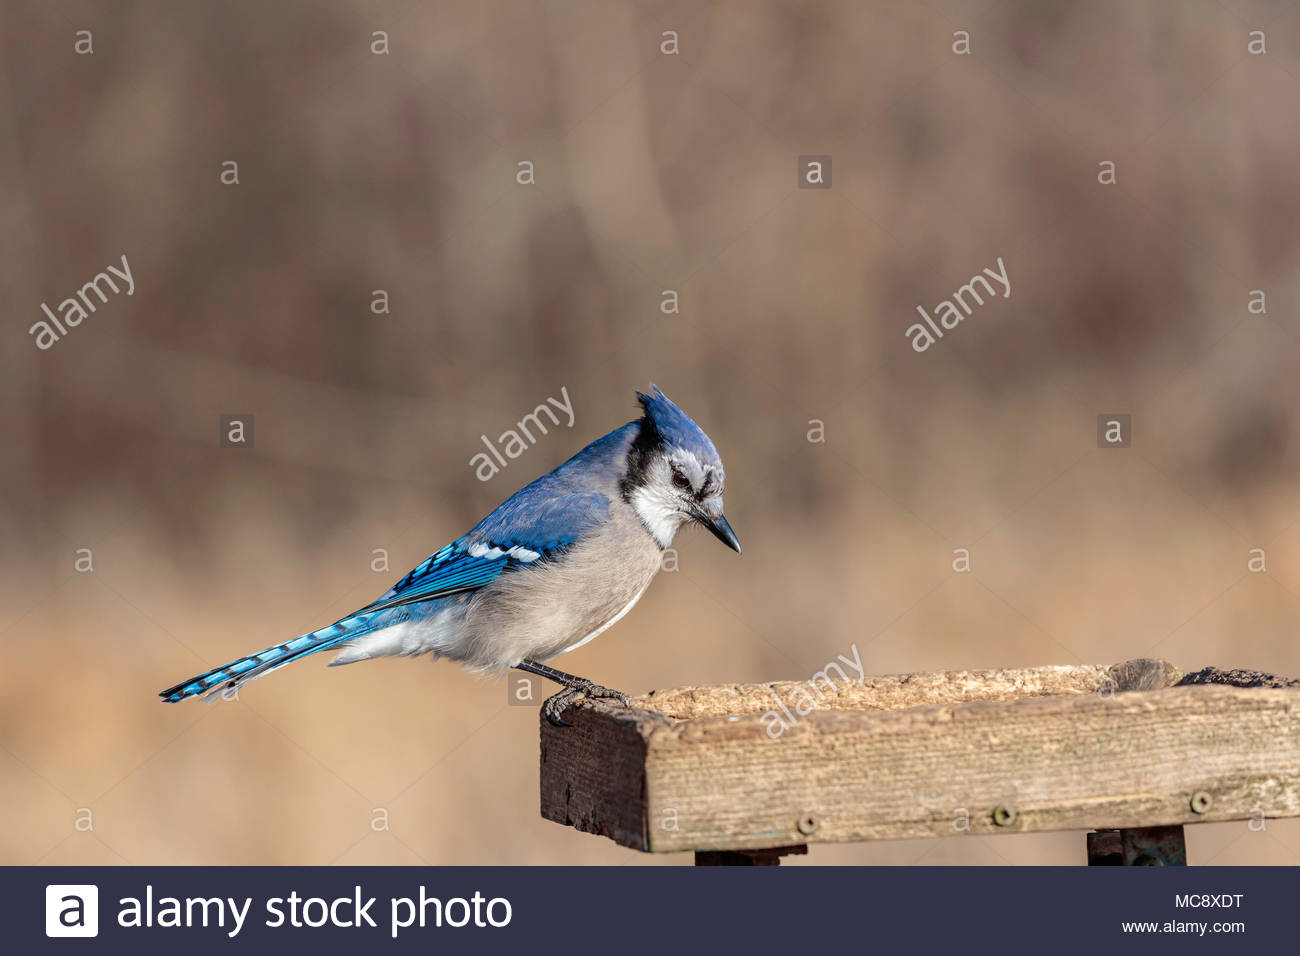 Blue jay Cyanocitta cristata at feeder showing structural coloration - Stock Image